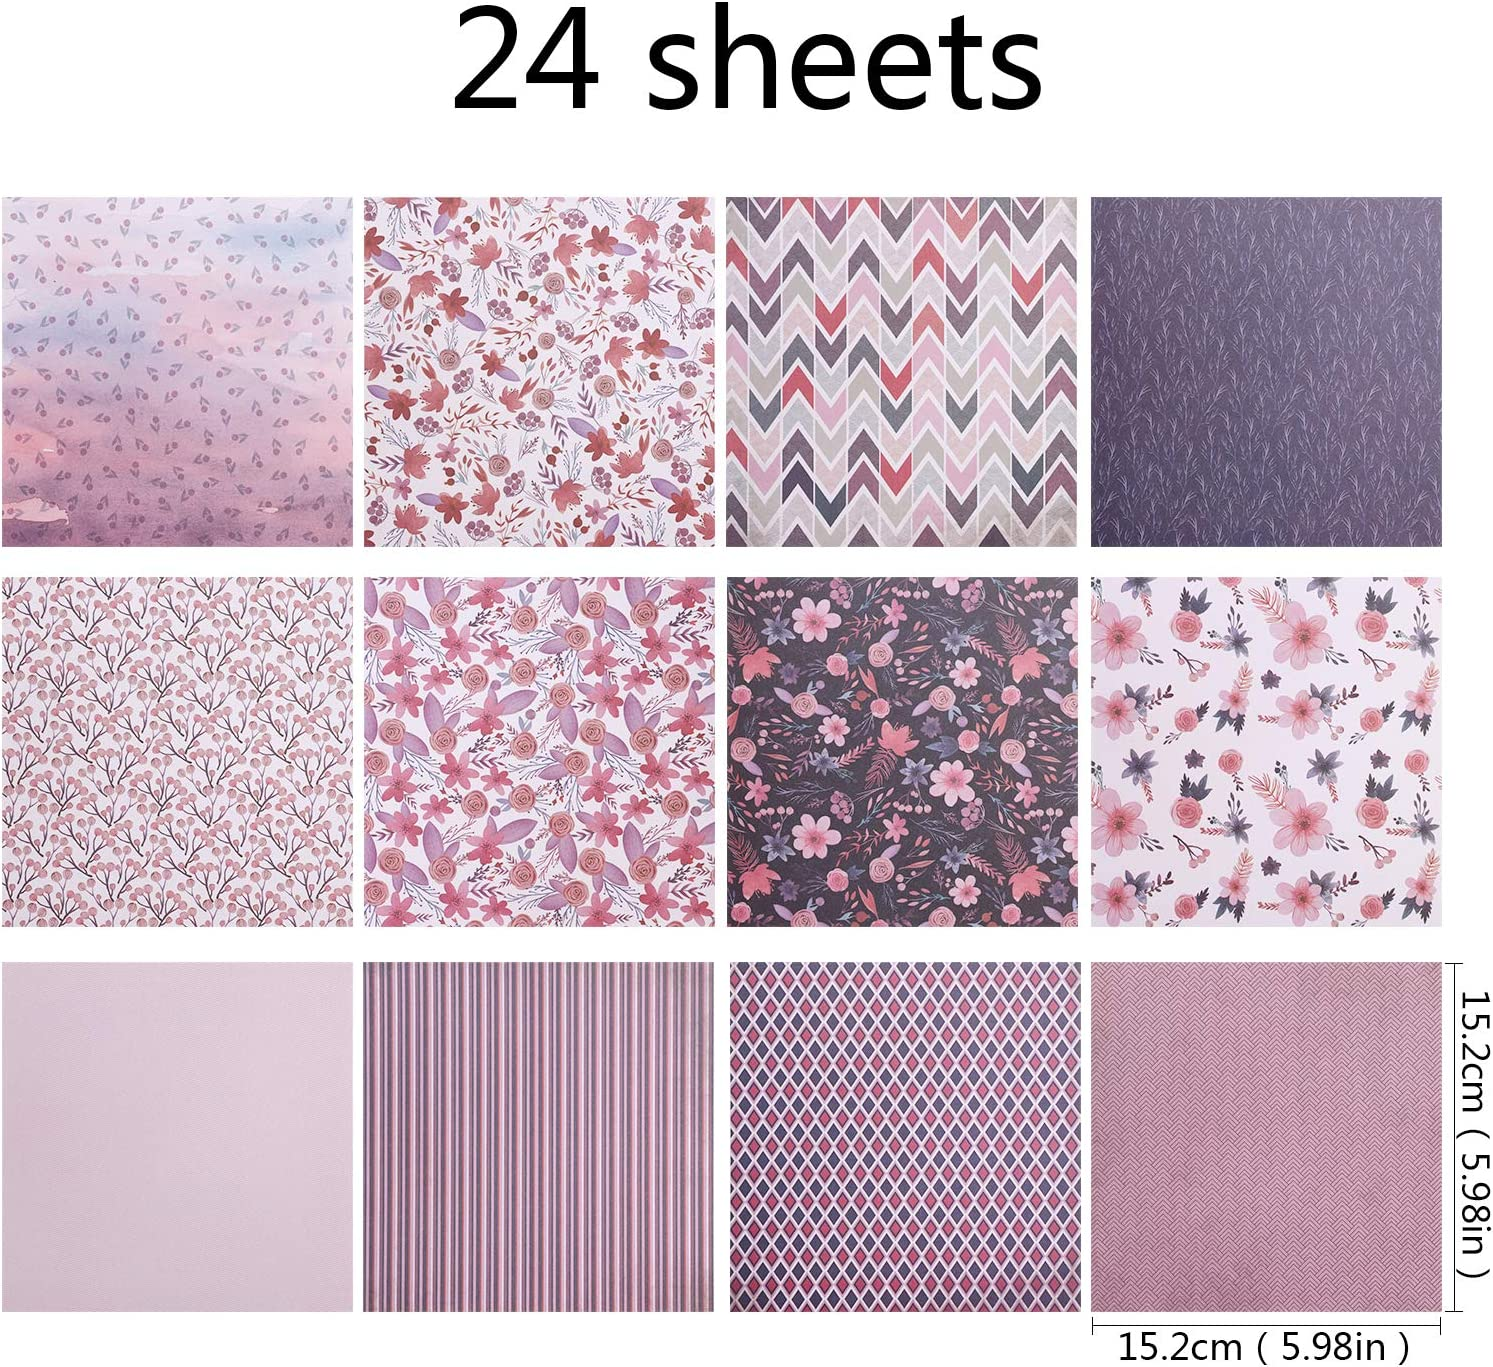 Hileyu 24pcs Patterned Paper Card Making 6 inch Single-Sided Scrapbook Paper Pad Decorative Paper Background Card Cardstock Paper for Craft Scrapbook Variety Styles DIY Scrapbook Paper Purple